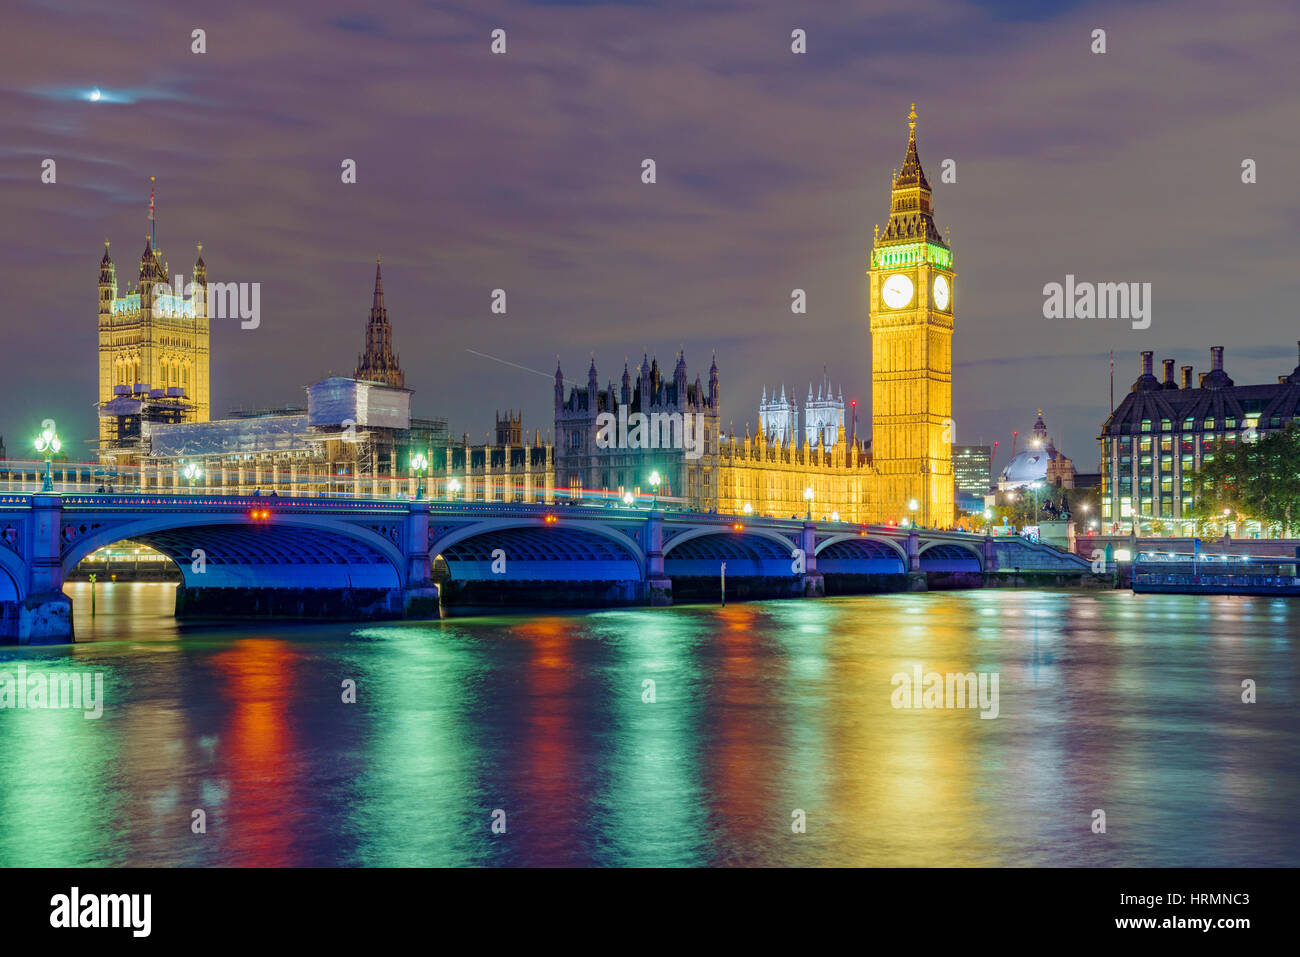 Nigh view of River Thames and the Houses of Parliament Stock Photo